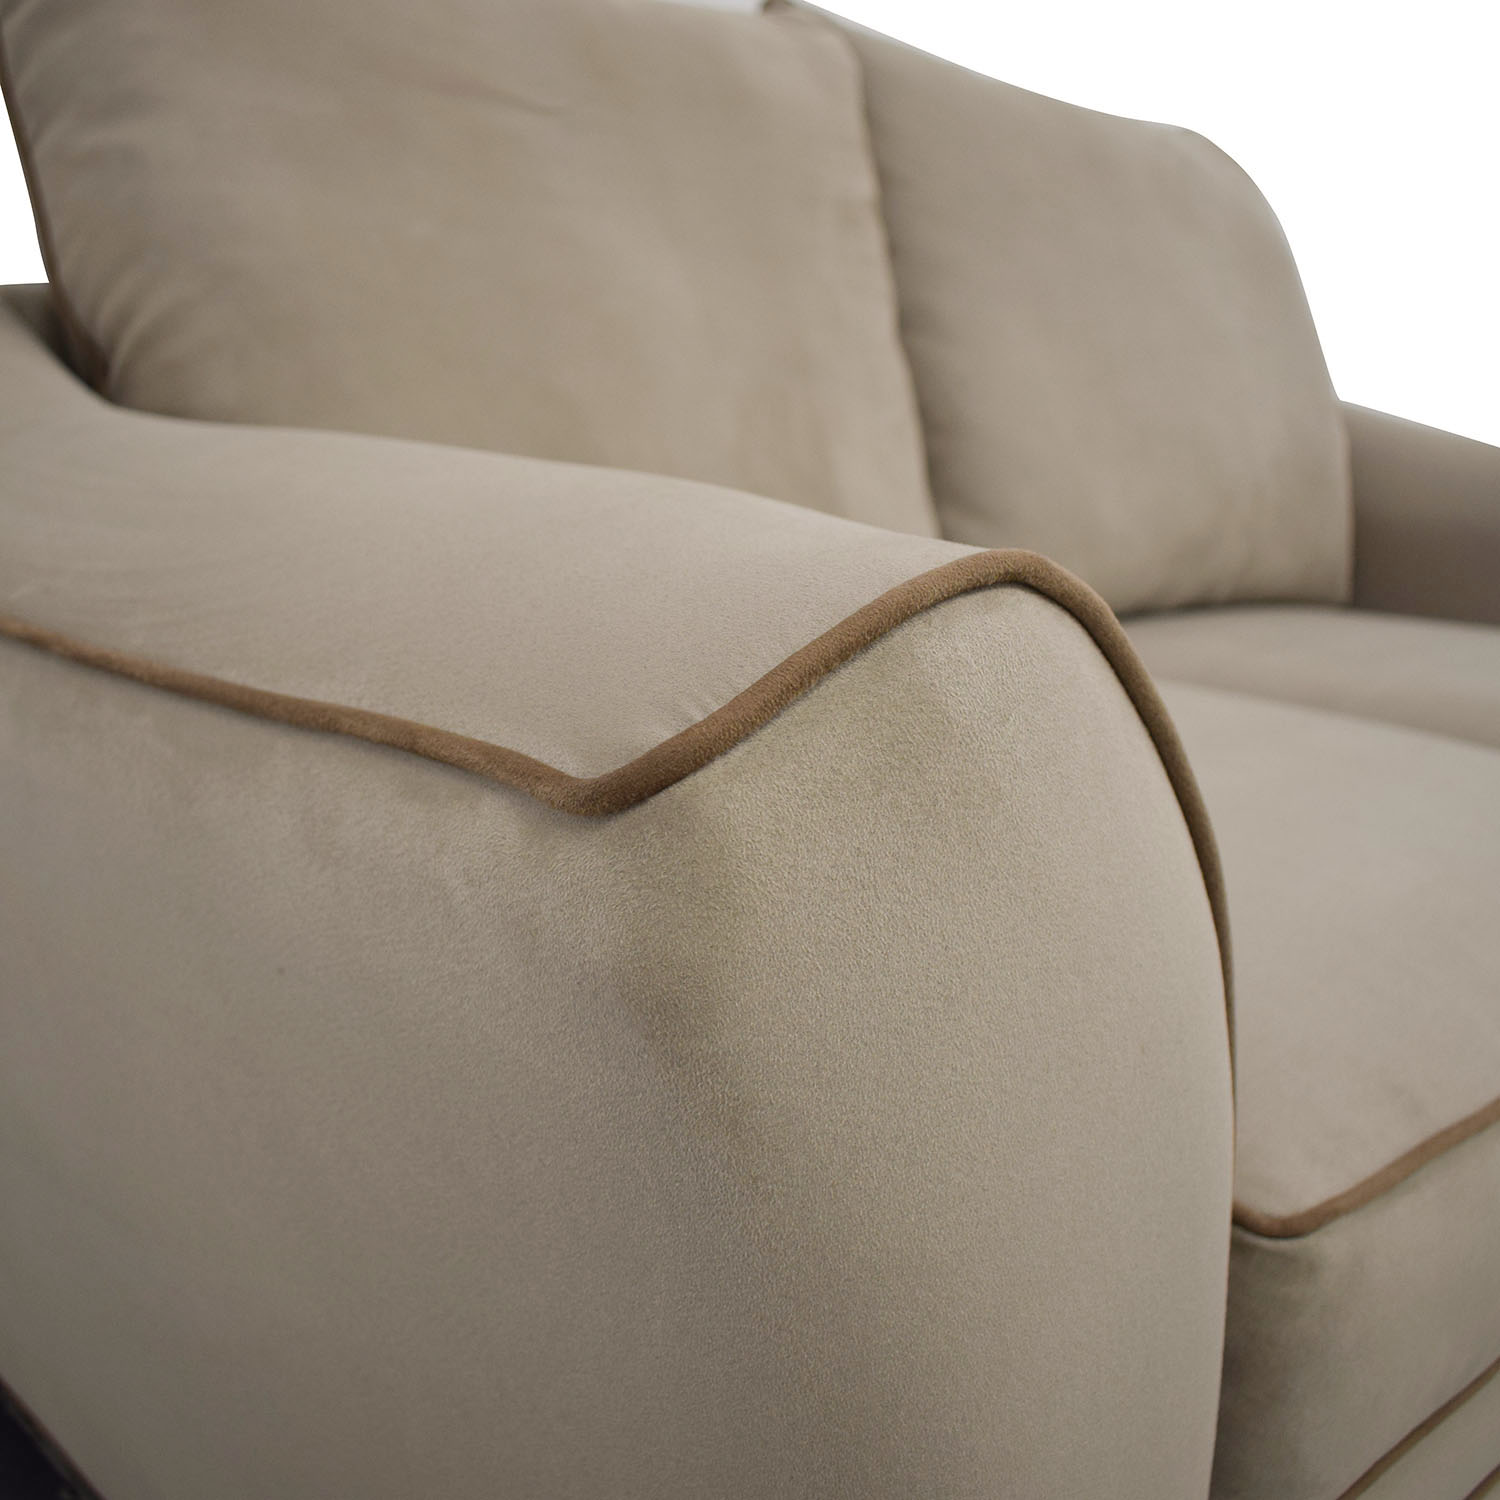 Raymour & Flanigan Raymour & Flanigan Blairwood Microfiber Loveseat dimensions